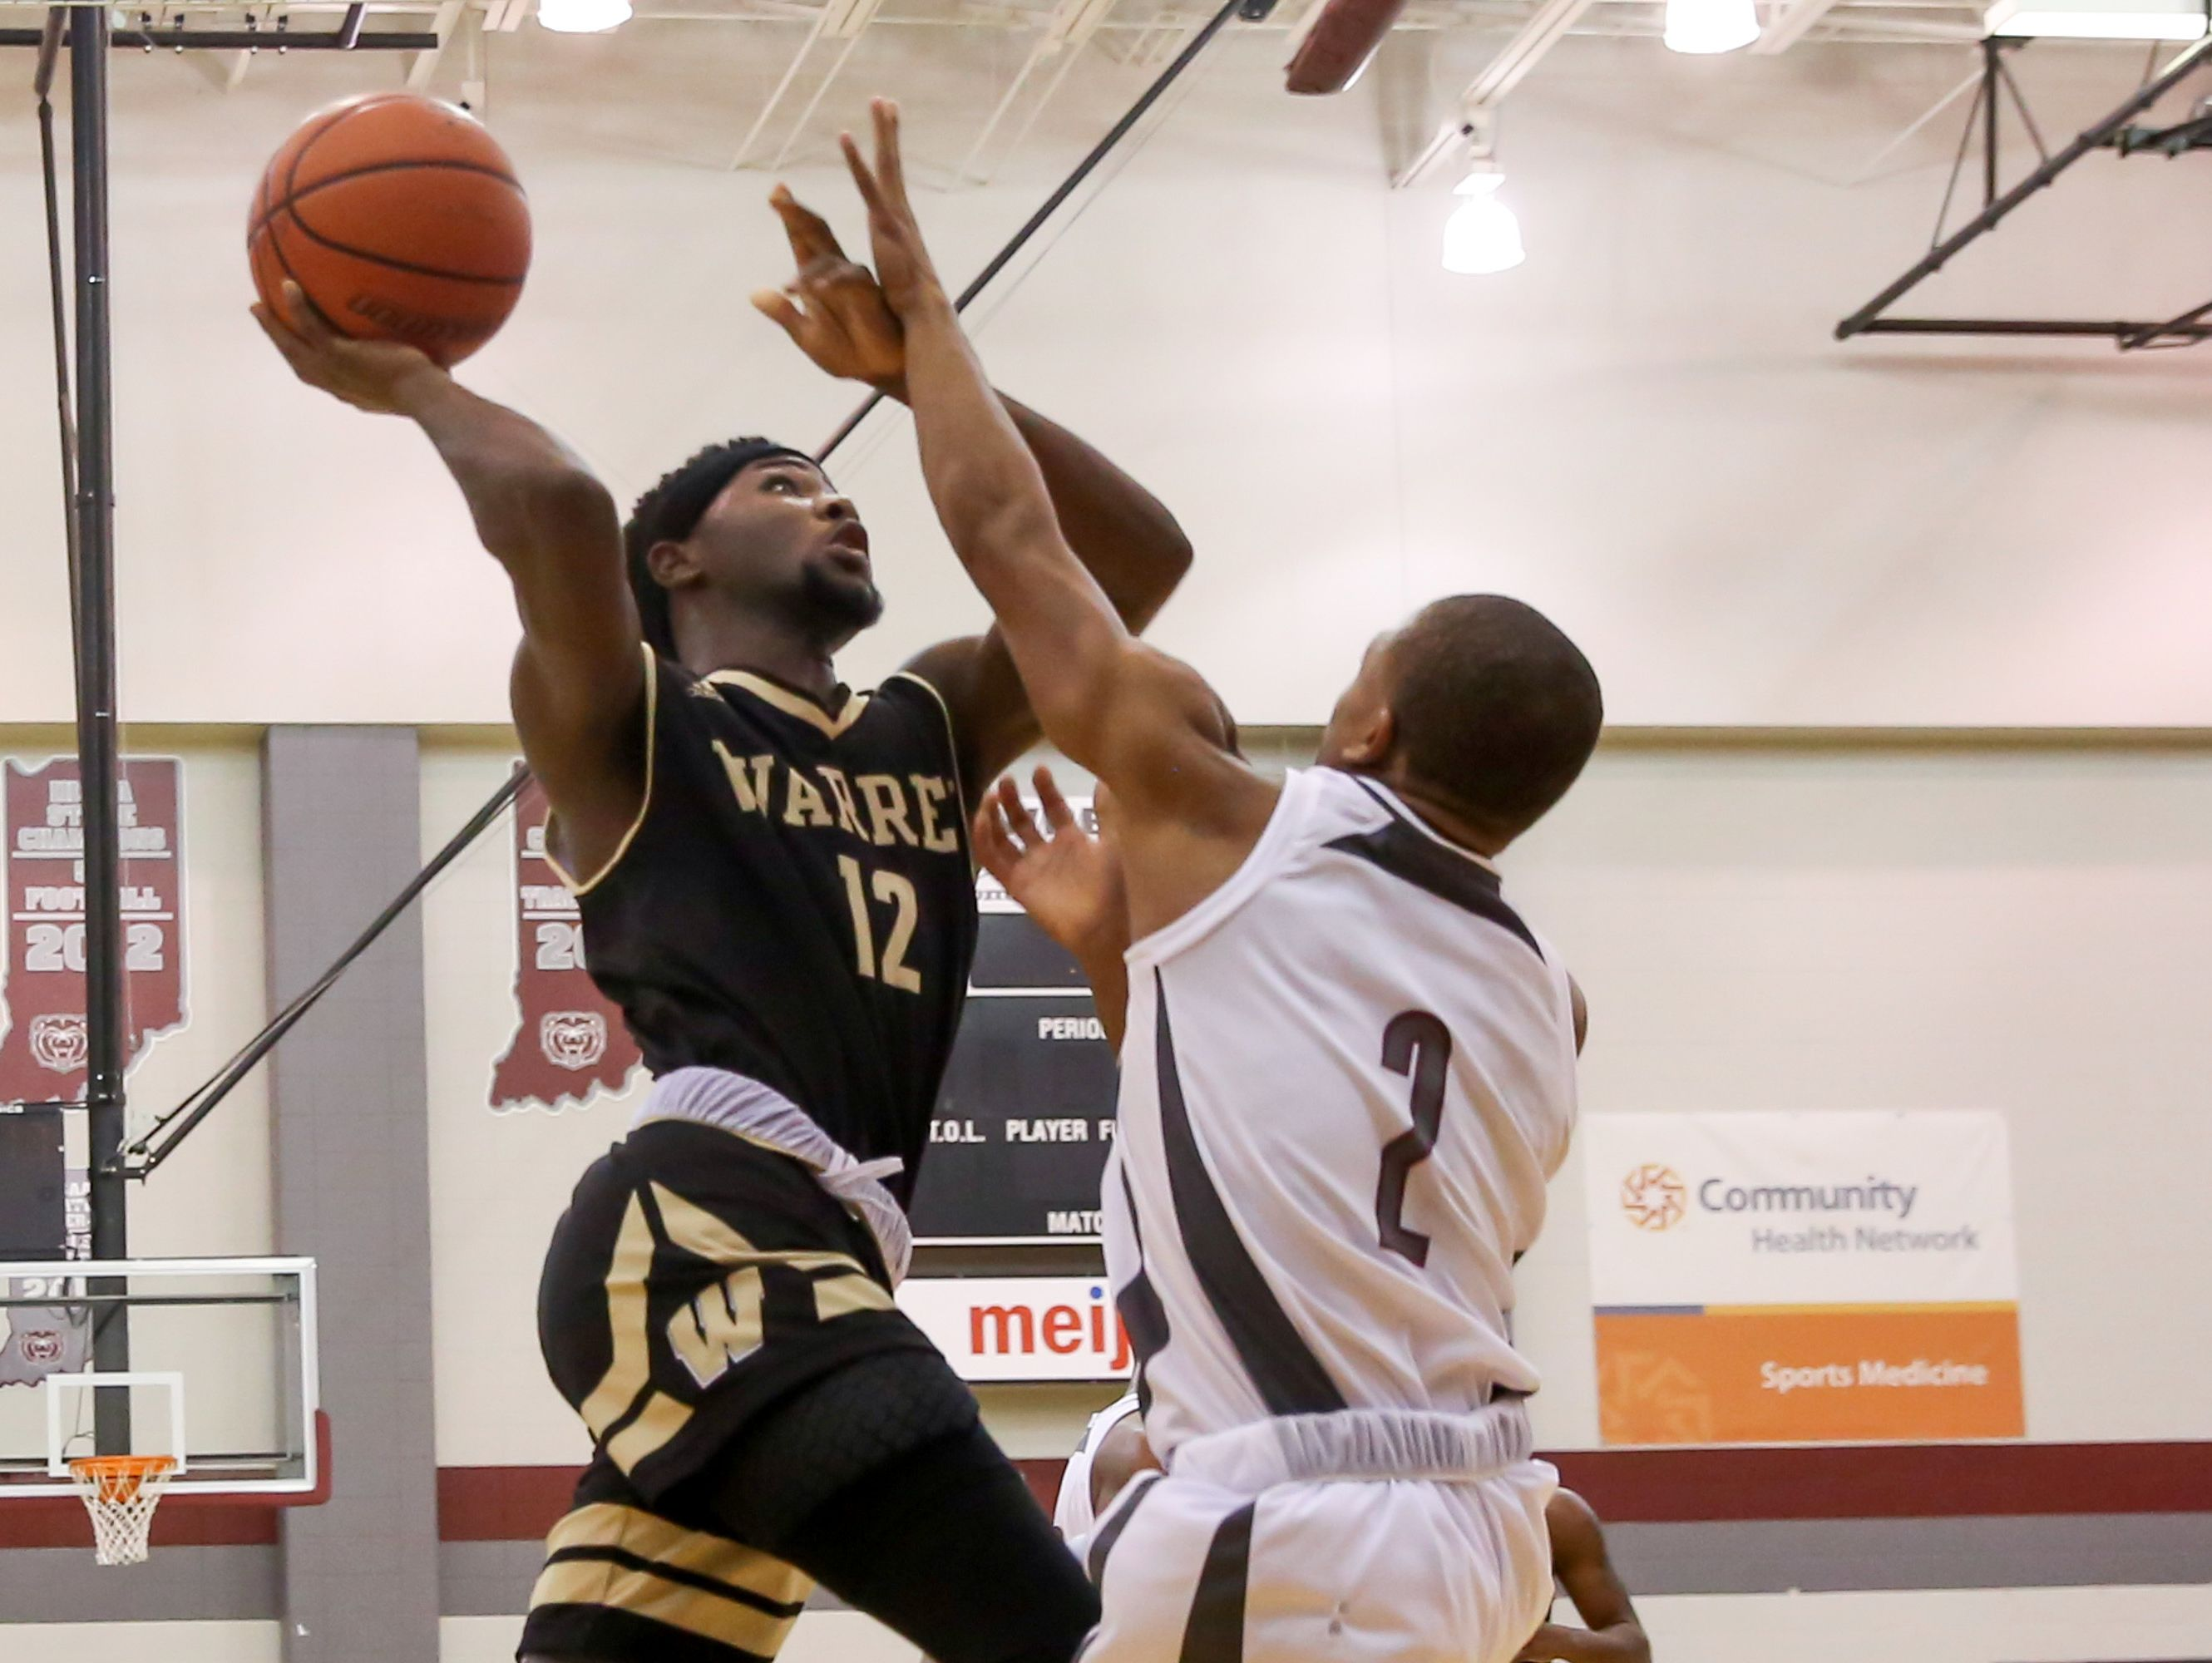 Mack Smith (12) scoreD a game-high 27 points in lifting Warren Central past Lawrence Central on Wednesday night.